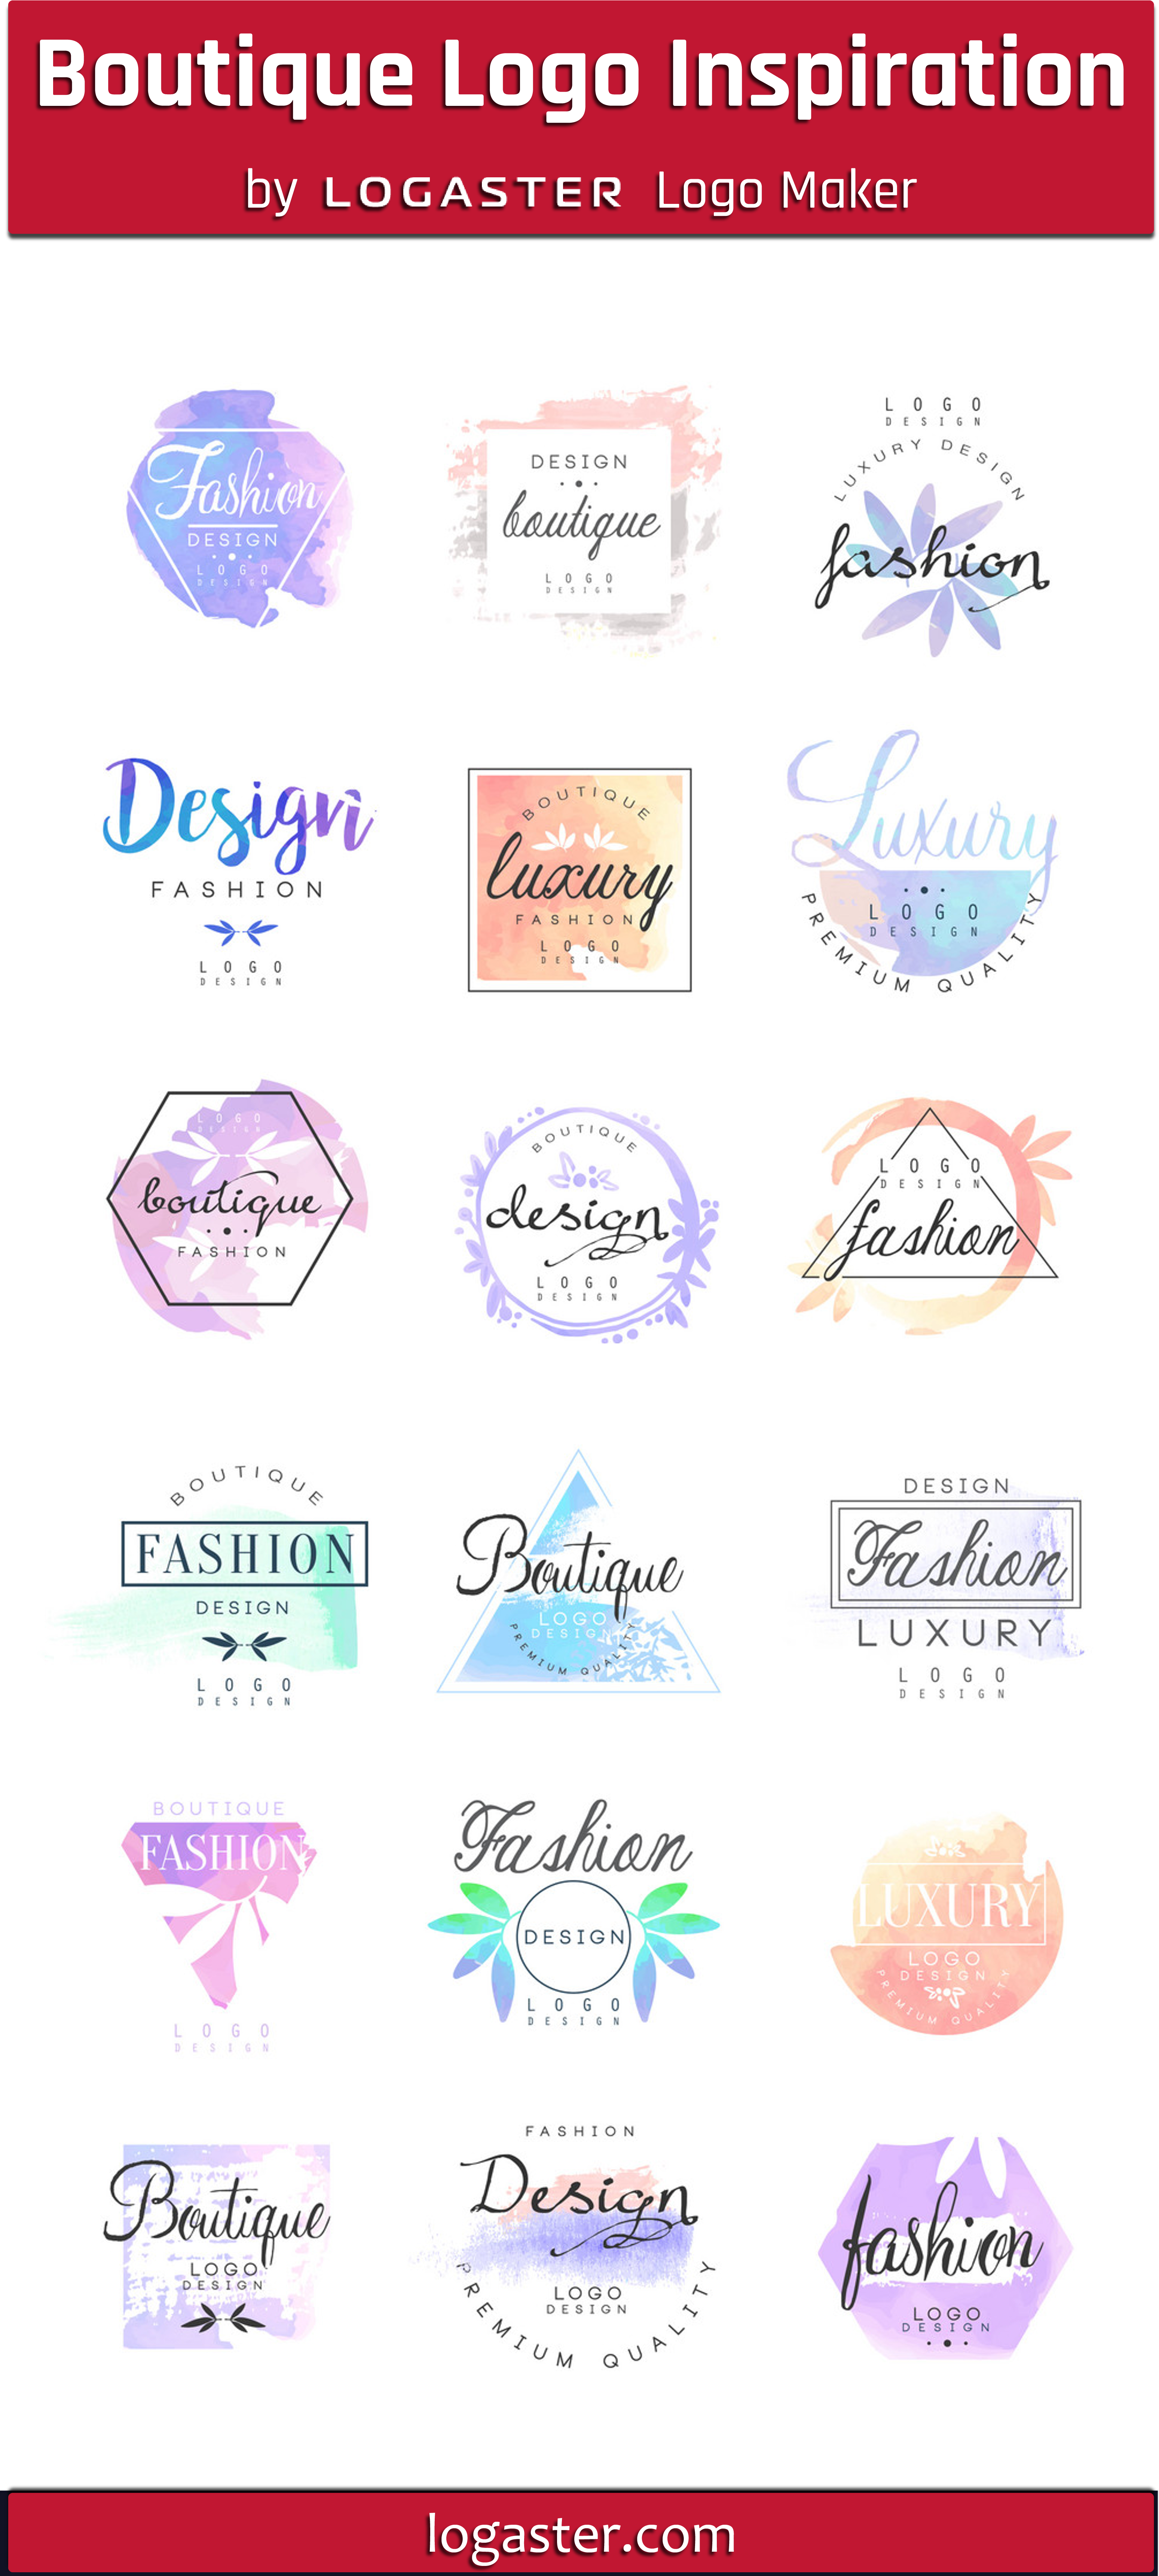 Logaster Logo Maker presents Boutique Logo Design Ideas